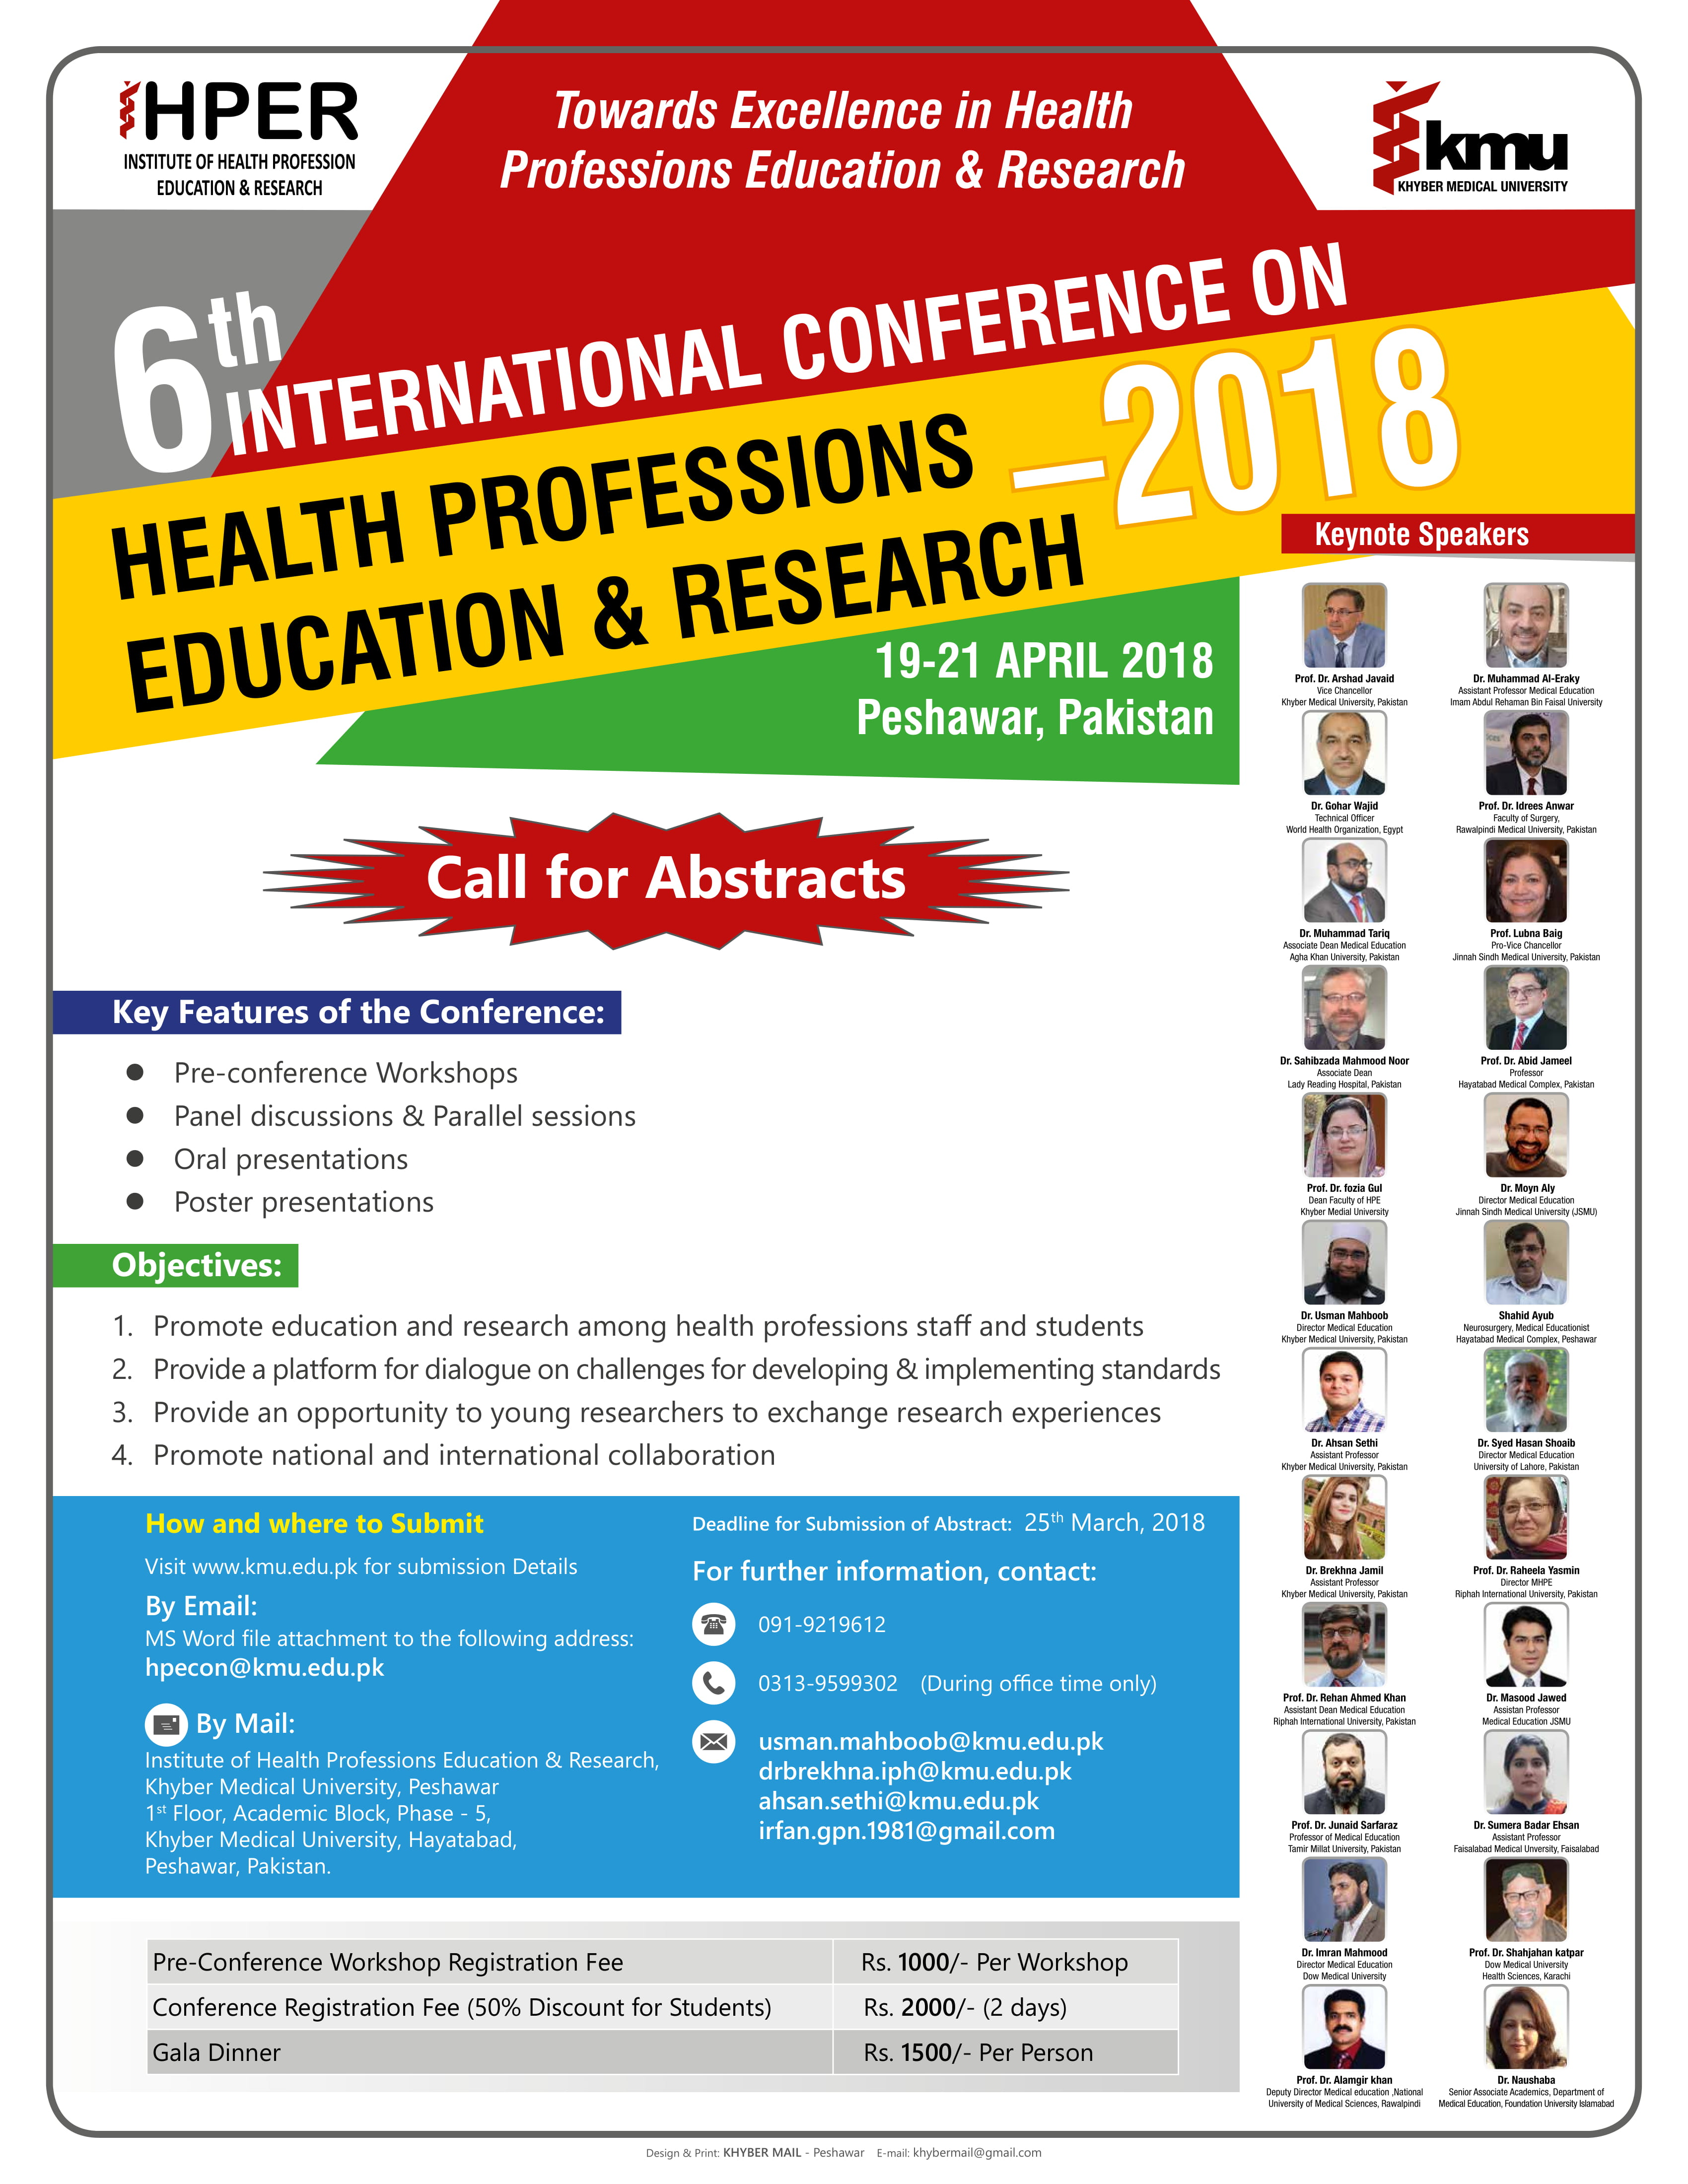 6th International Conference on Health Professions Education